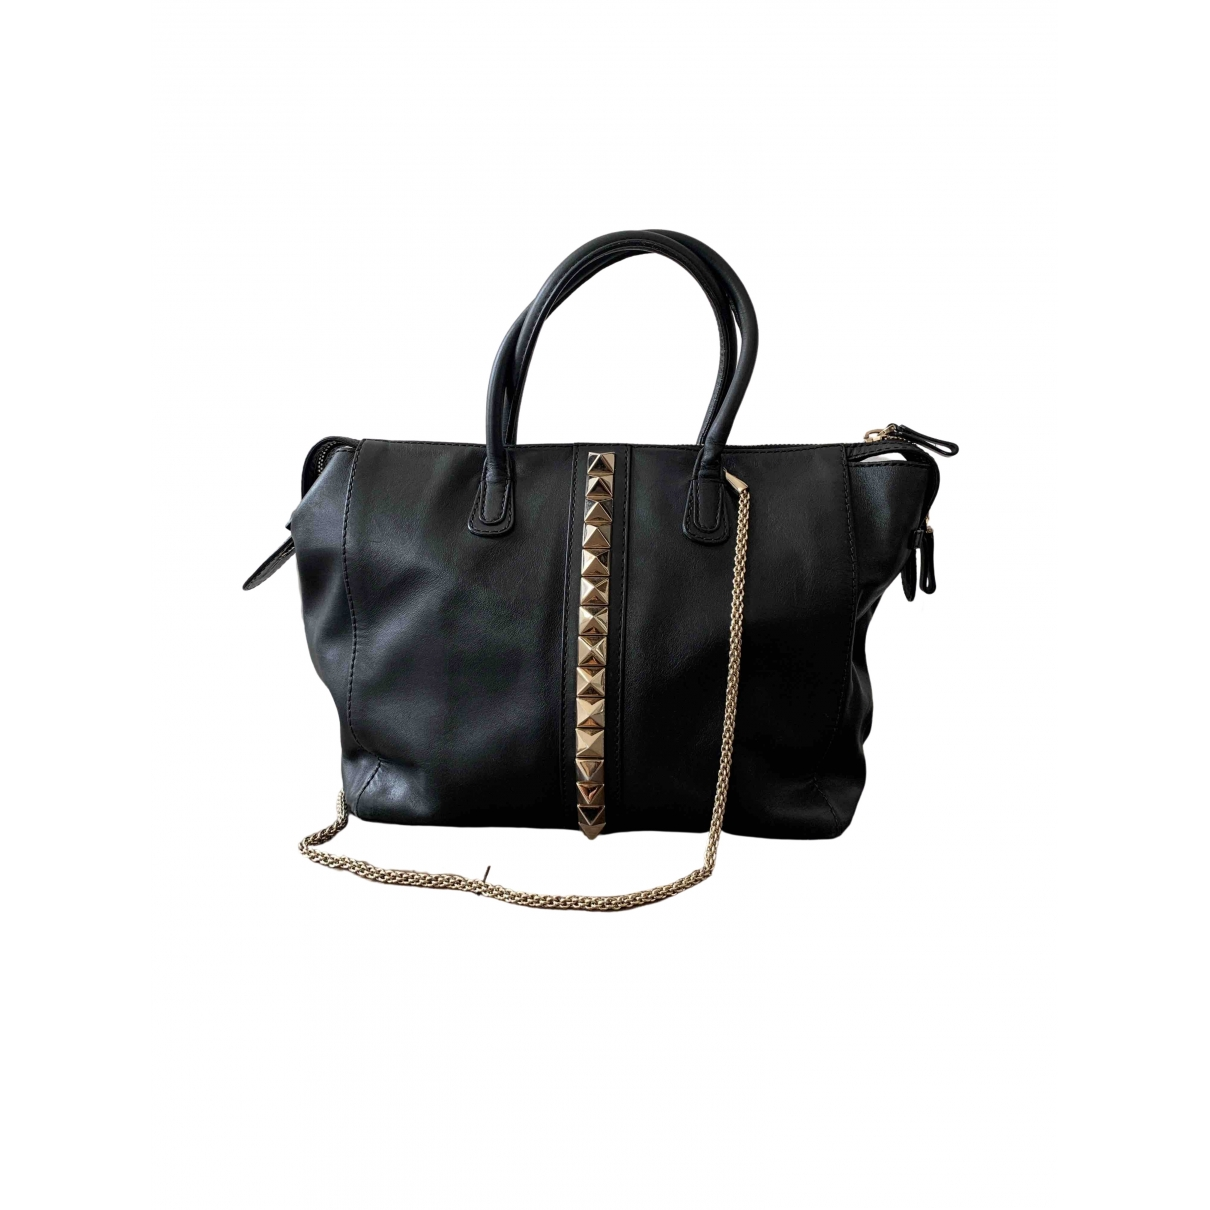 Valentino Garavani \N Black Leather handbag for Women \N